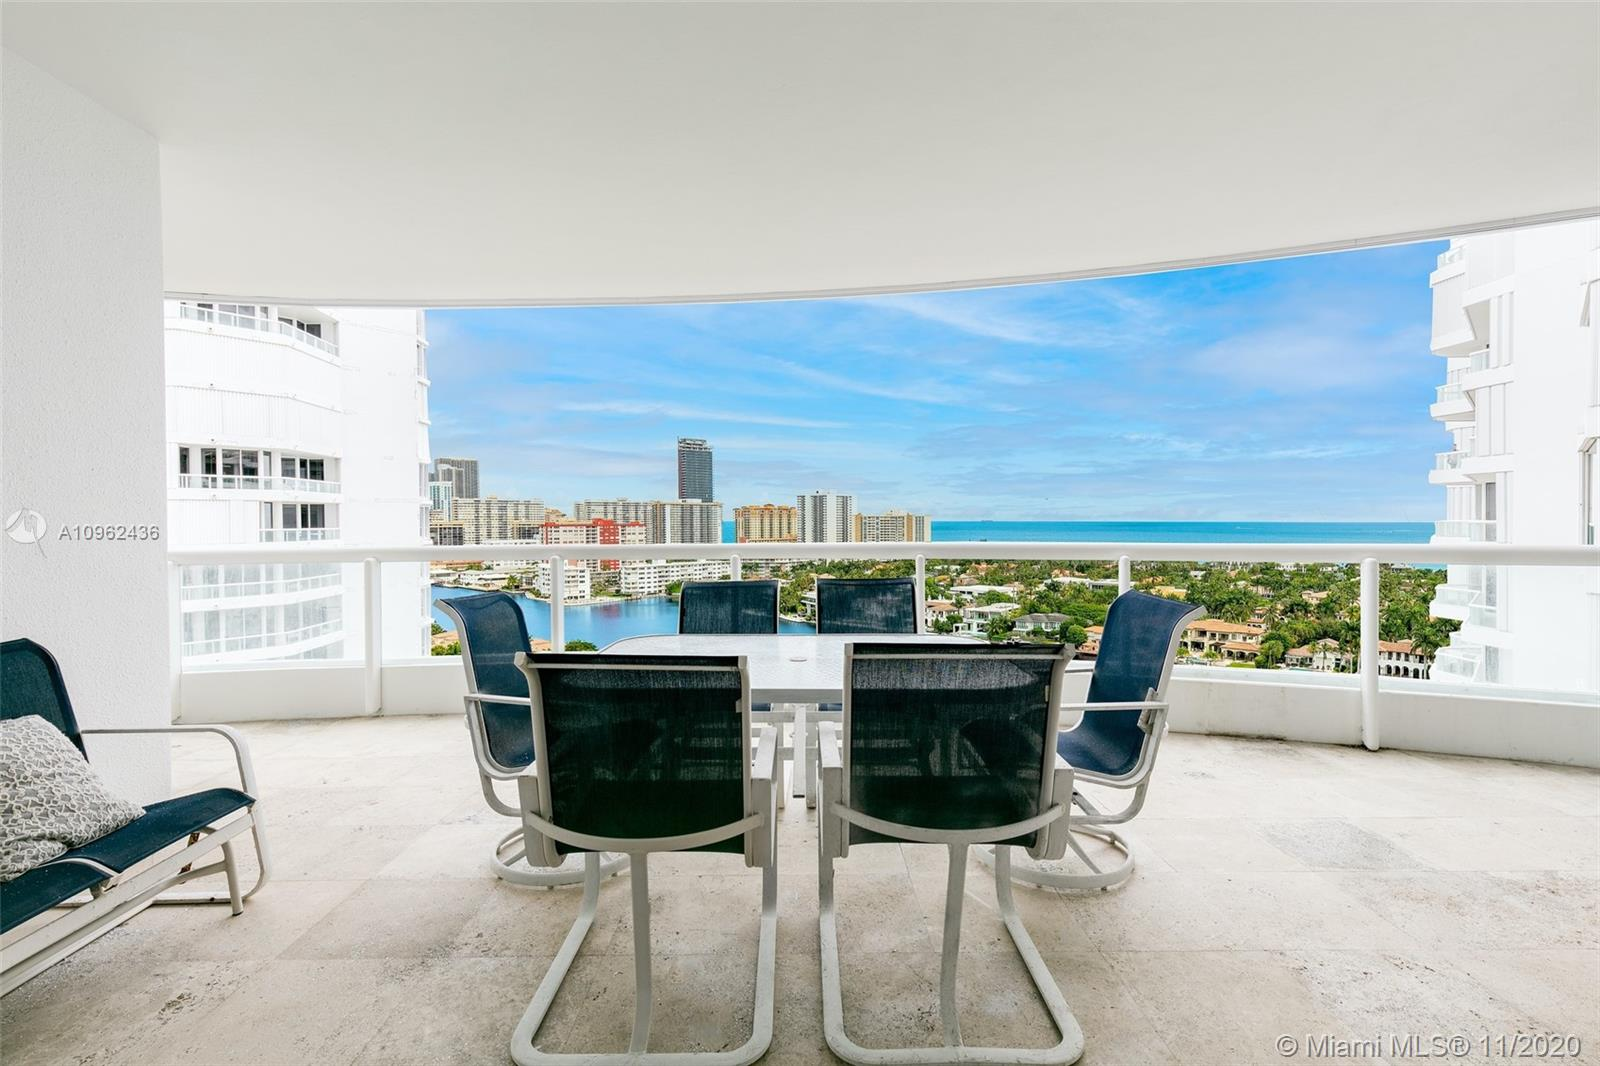 Live in coveted Atlantic III at The Point. This spacious 2,440 SF residence welcomes you w/ direct ocean & intracoastal views. Enter through your own private elevator entry directly to your residence, all rooms have stunning views & balcony access. This 3 bedroom, 2 full & 1 half bath residence features an expansive terrace showing off the stunning vistas w/ access from the master suite, kitchen & living room. The additional terrace has views of the marina. This unit features spacious walk-in closets throughout, an eat-in kitchen & separate utility room w/ sink. Enjoy resort-like living in this full service building that offers a spectacular state of the art clubhouse, 3 pools, restaurant, marina, fitness center, sauna, theater, BBQ area, tennis courts, towel service, 24hr security & valet